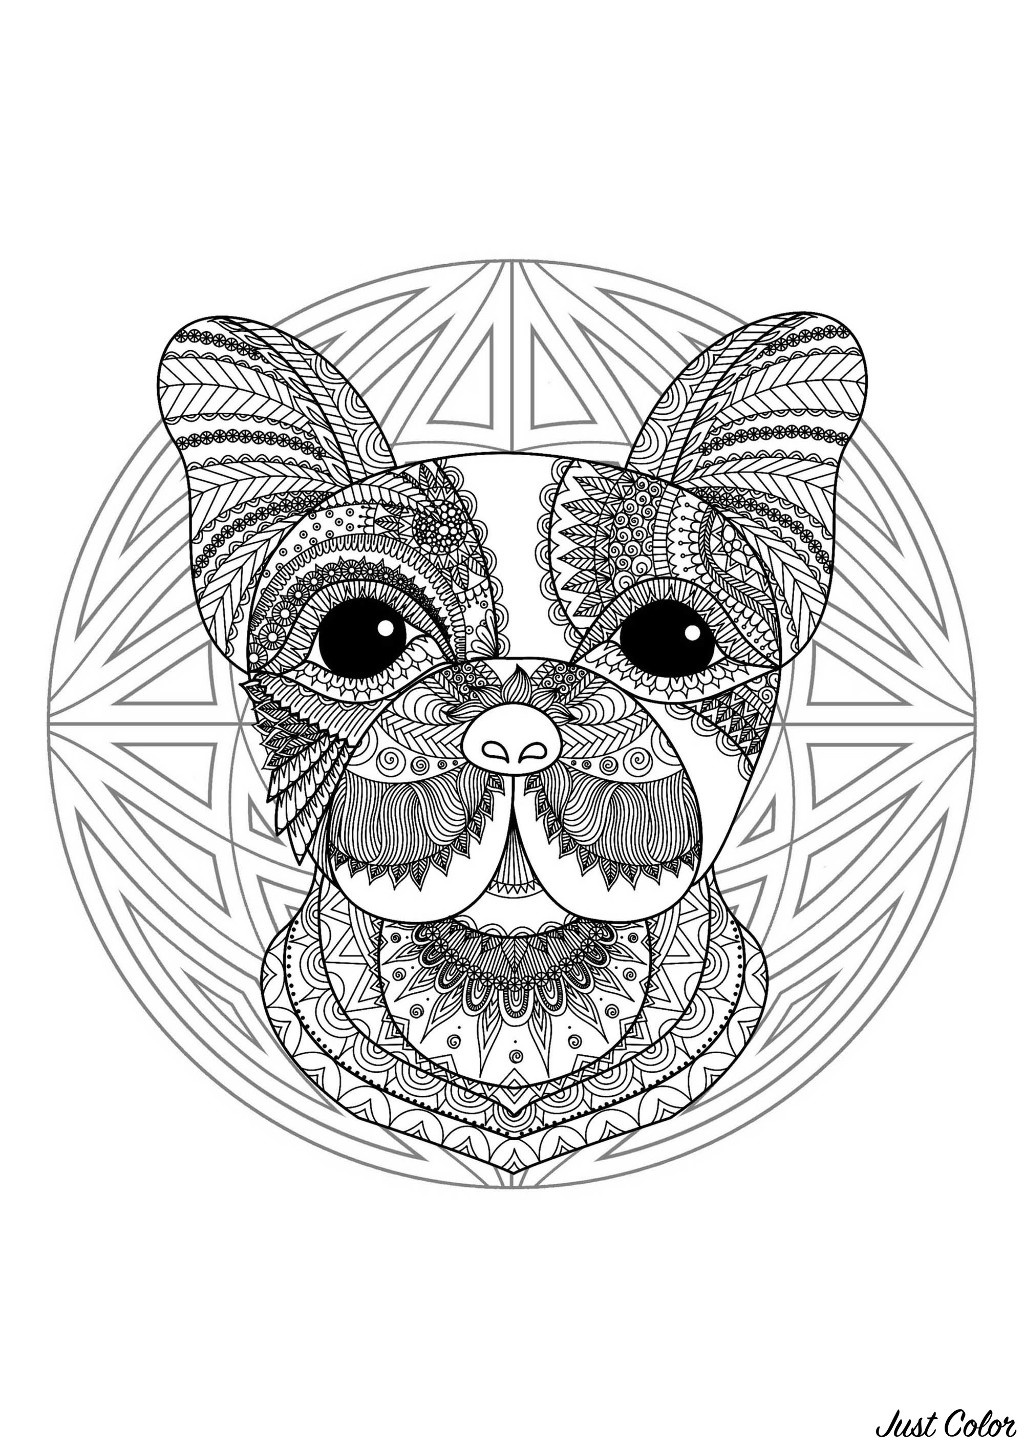 A beautiful Mandala coloring page, of great quality and originality. It's up to you to choose the most appropriate colors to give life to this cute dog.